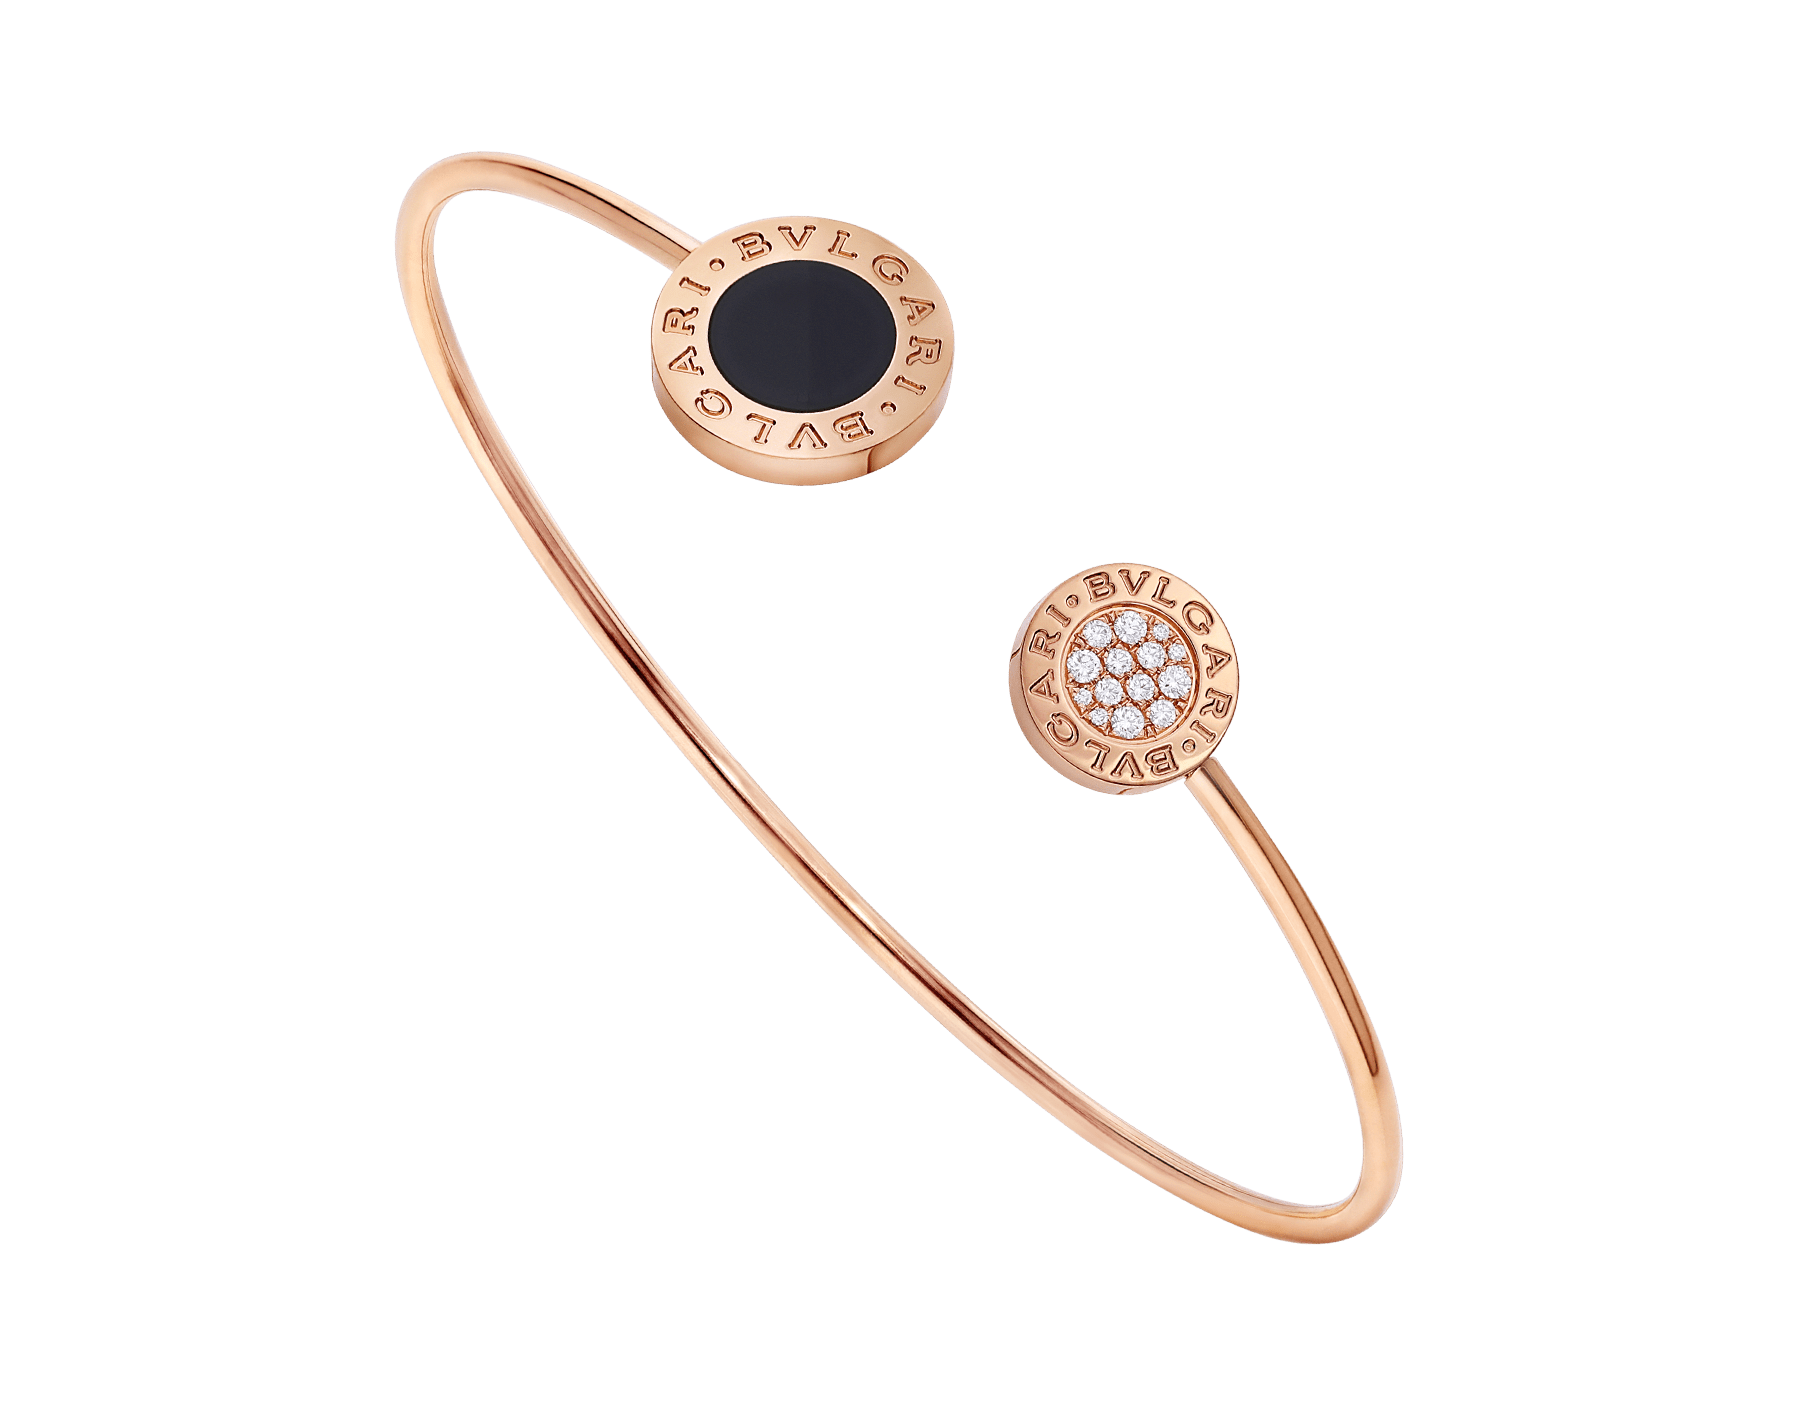 BVLGARI BVLGARI 18 kt rose gold bracelet set with onyx element and pavé diamonds (0.09 ct) BR858633 image 1